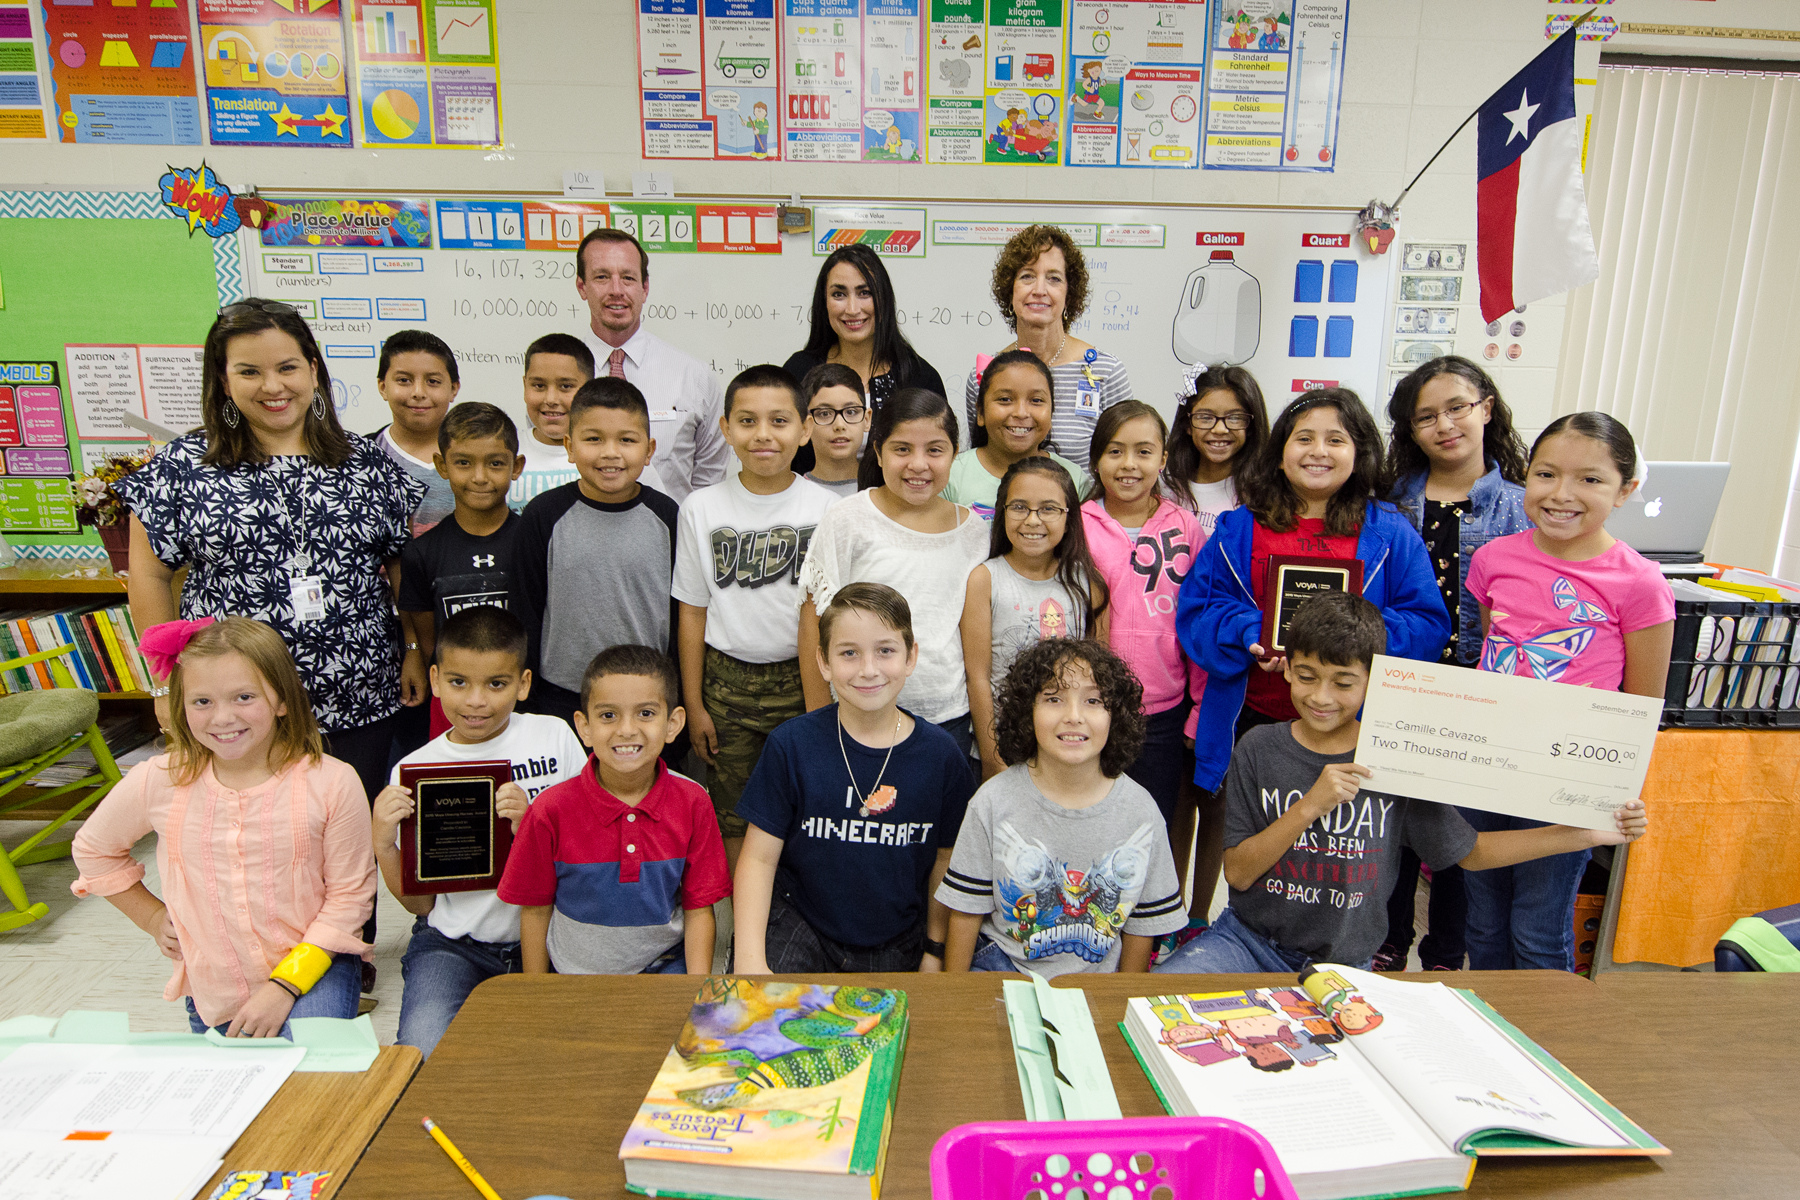 Long Elementary teacher awarded $2,000 grant for innovative teaching